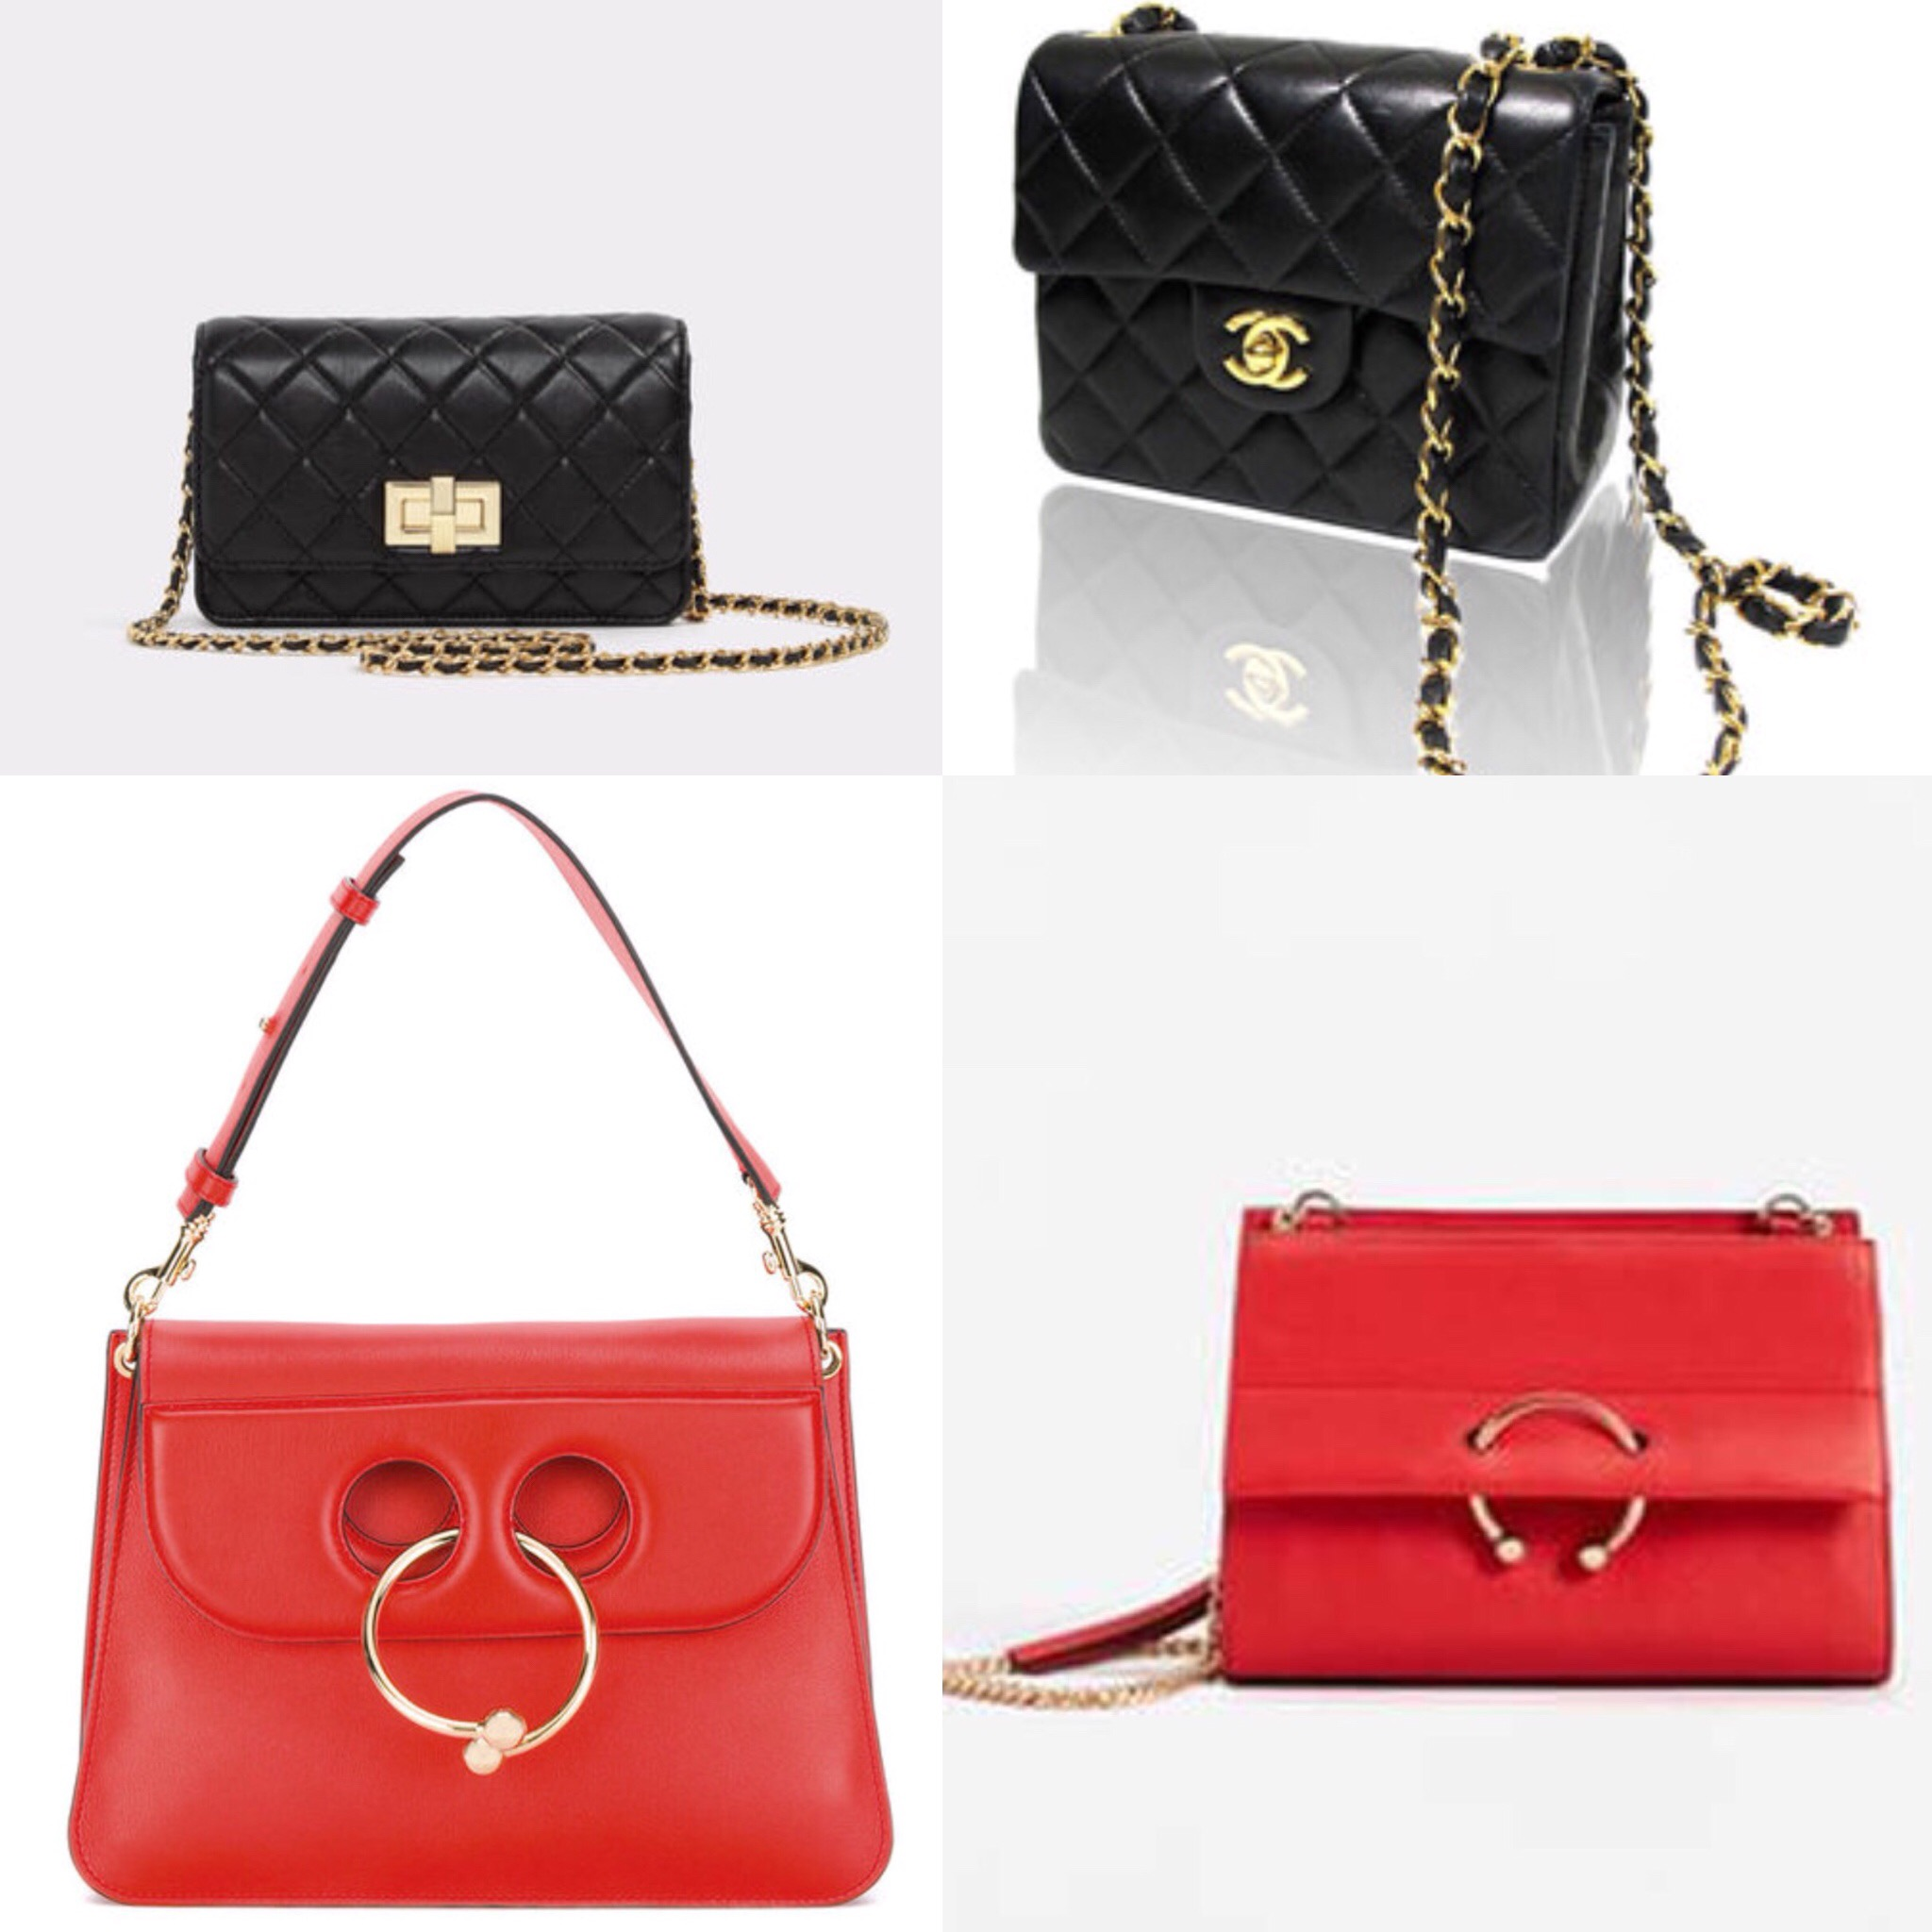 Eight Designer Handbag Dupes that will not break the bank.